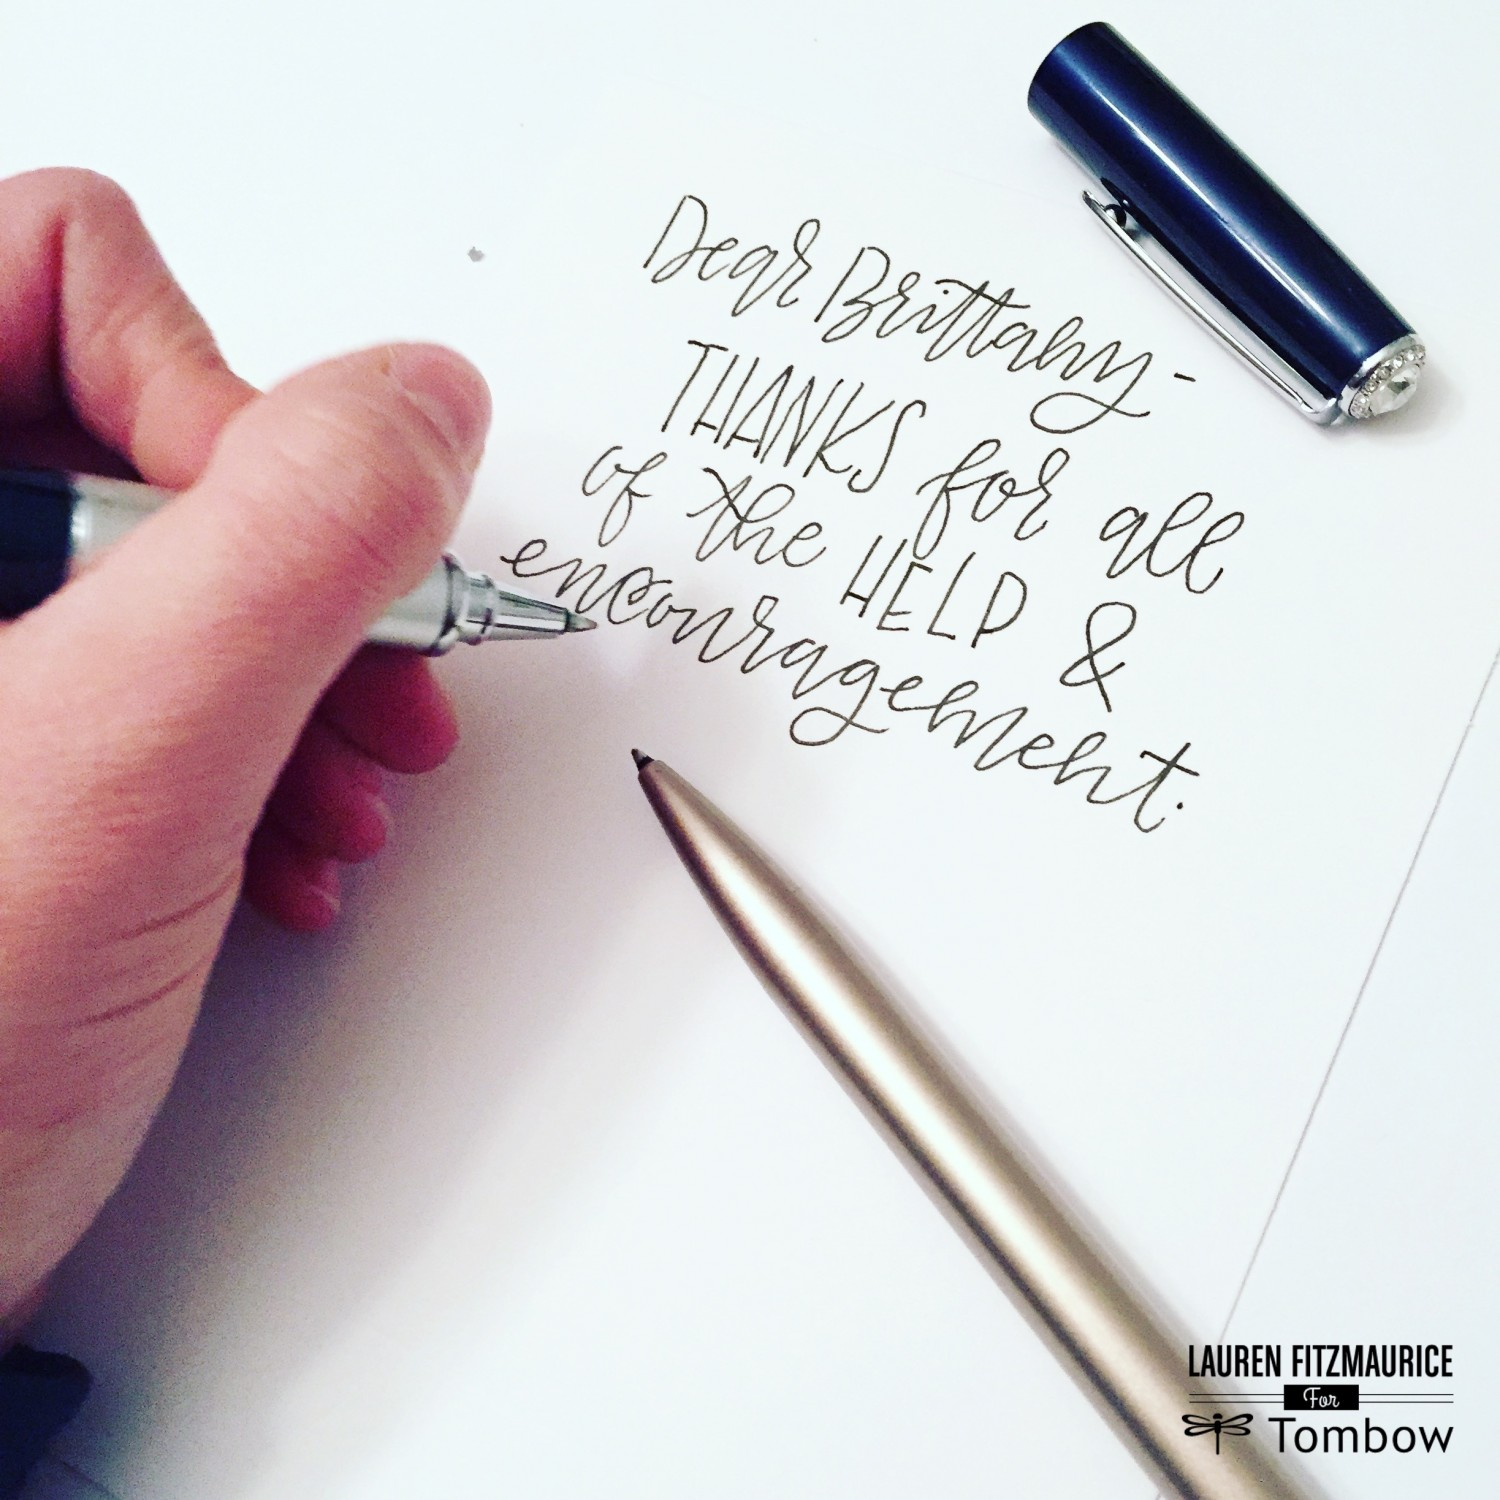 Tombow Top 10 Products Every Letterer Needs Now By